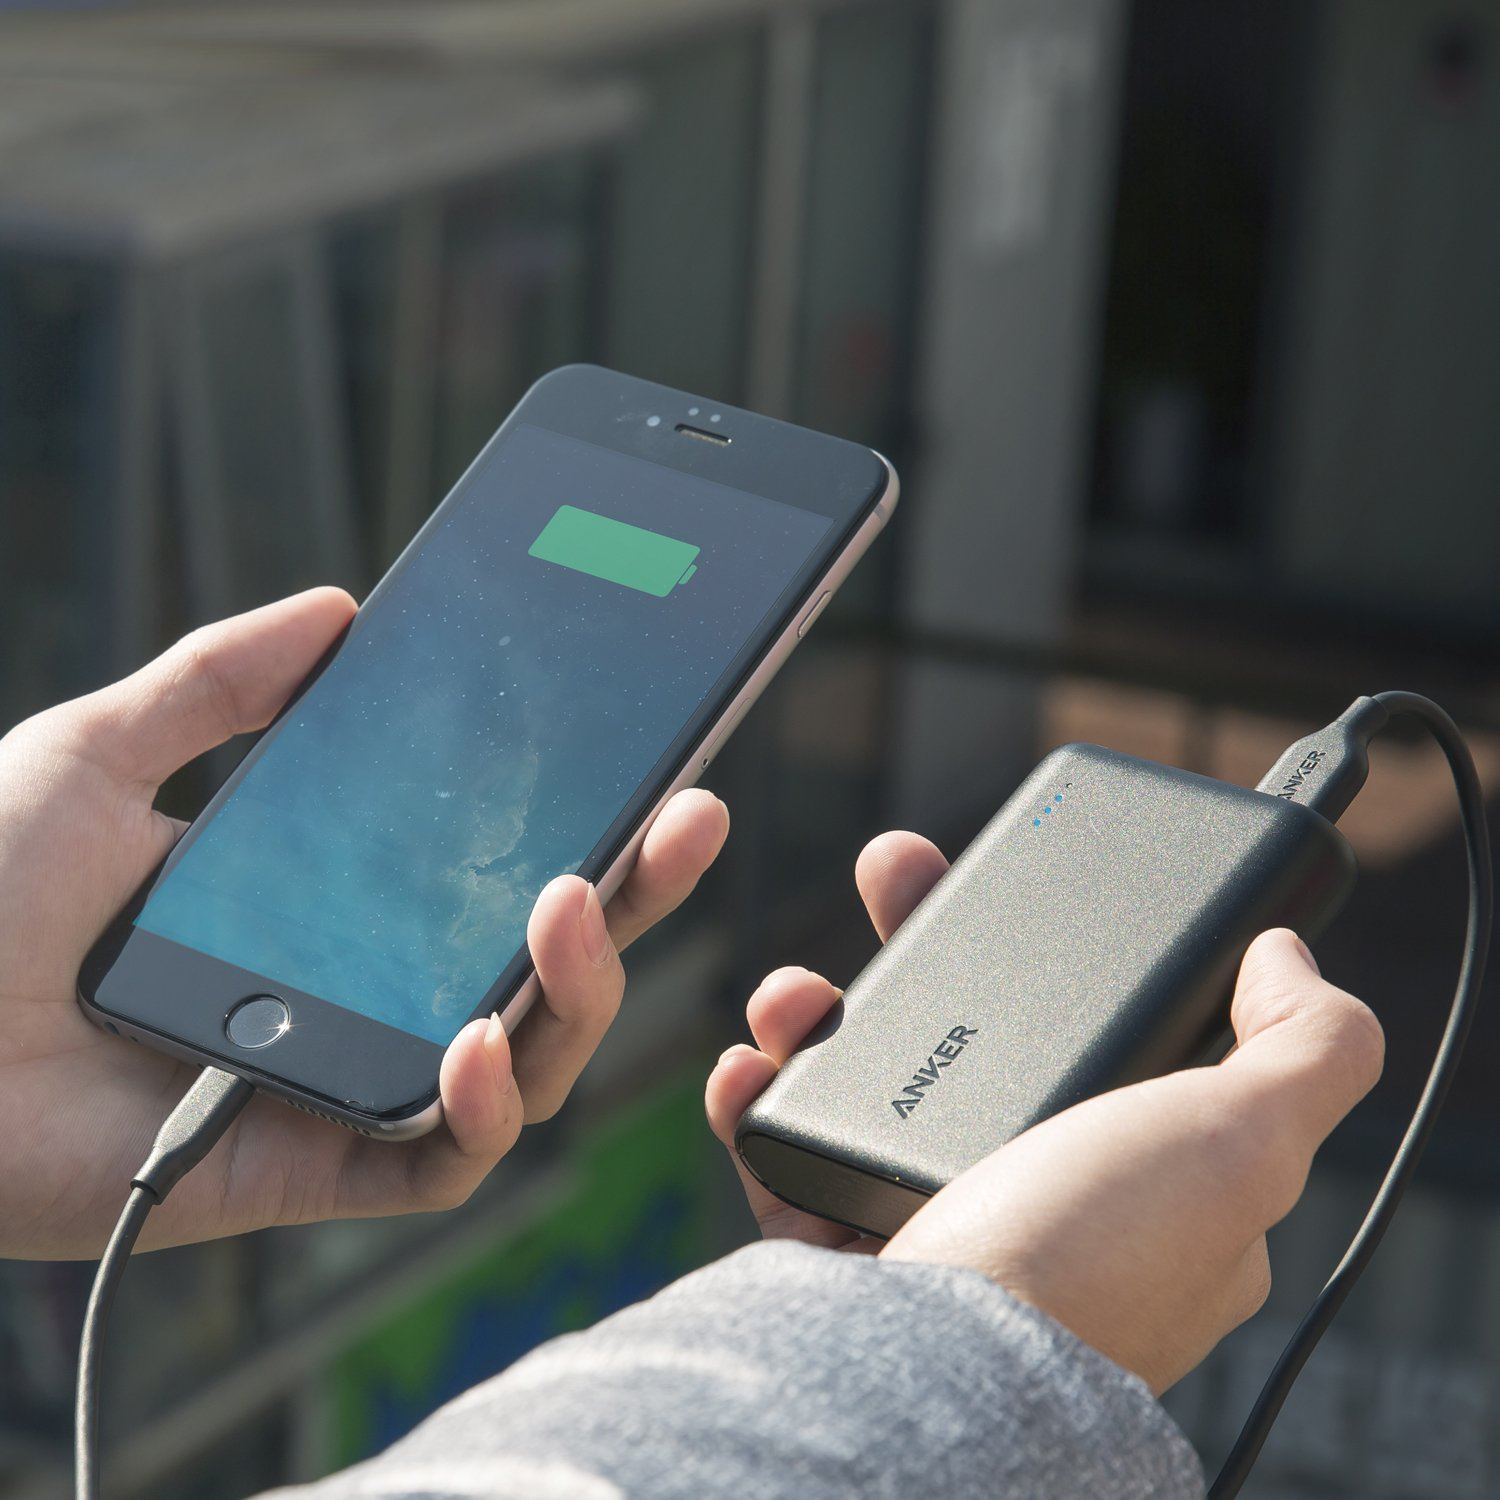 An iPhone plugged into an Anker charger.